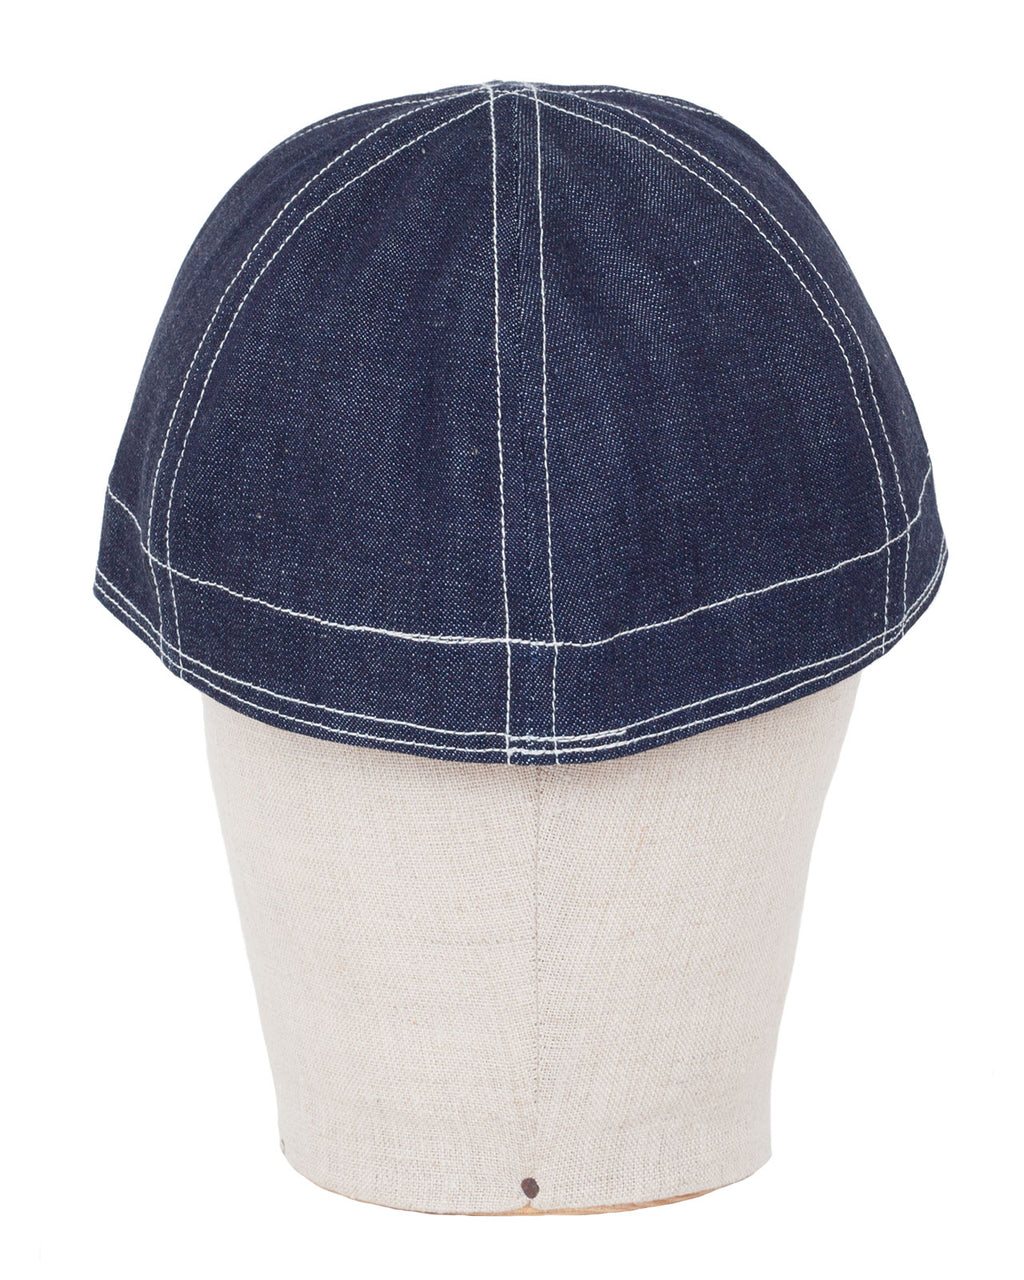 Freewheelers Mechanic Cap, 10oz Denim